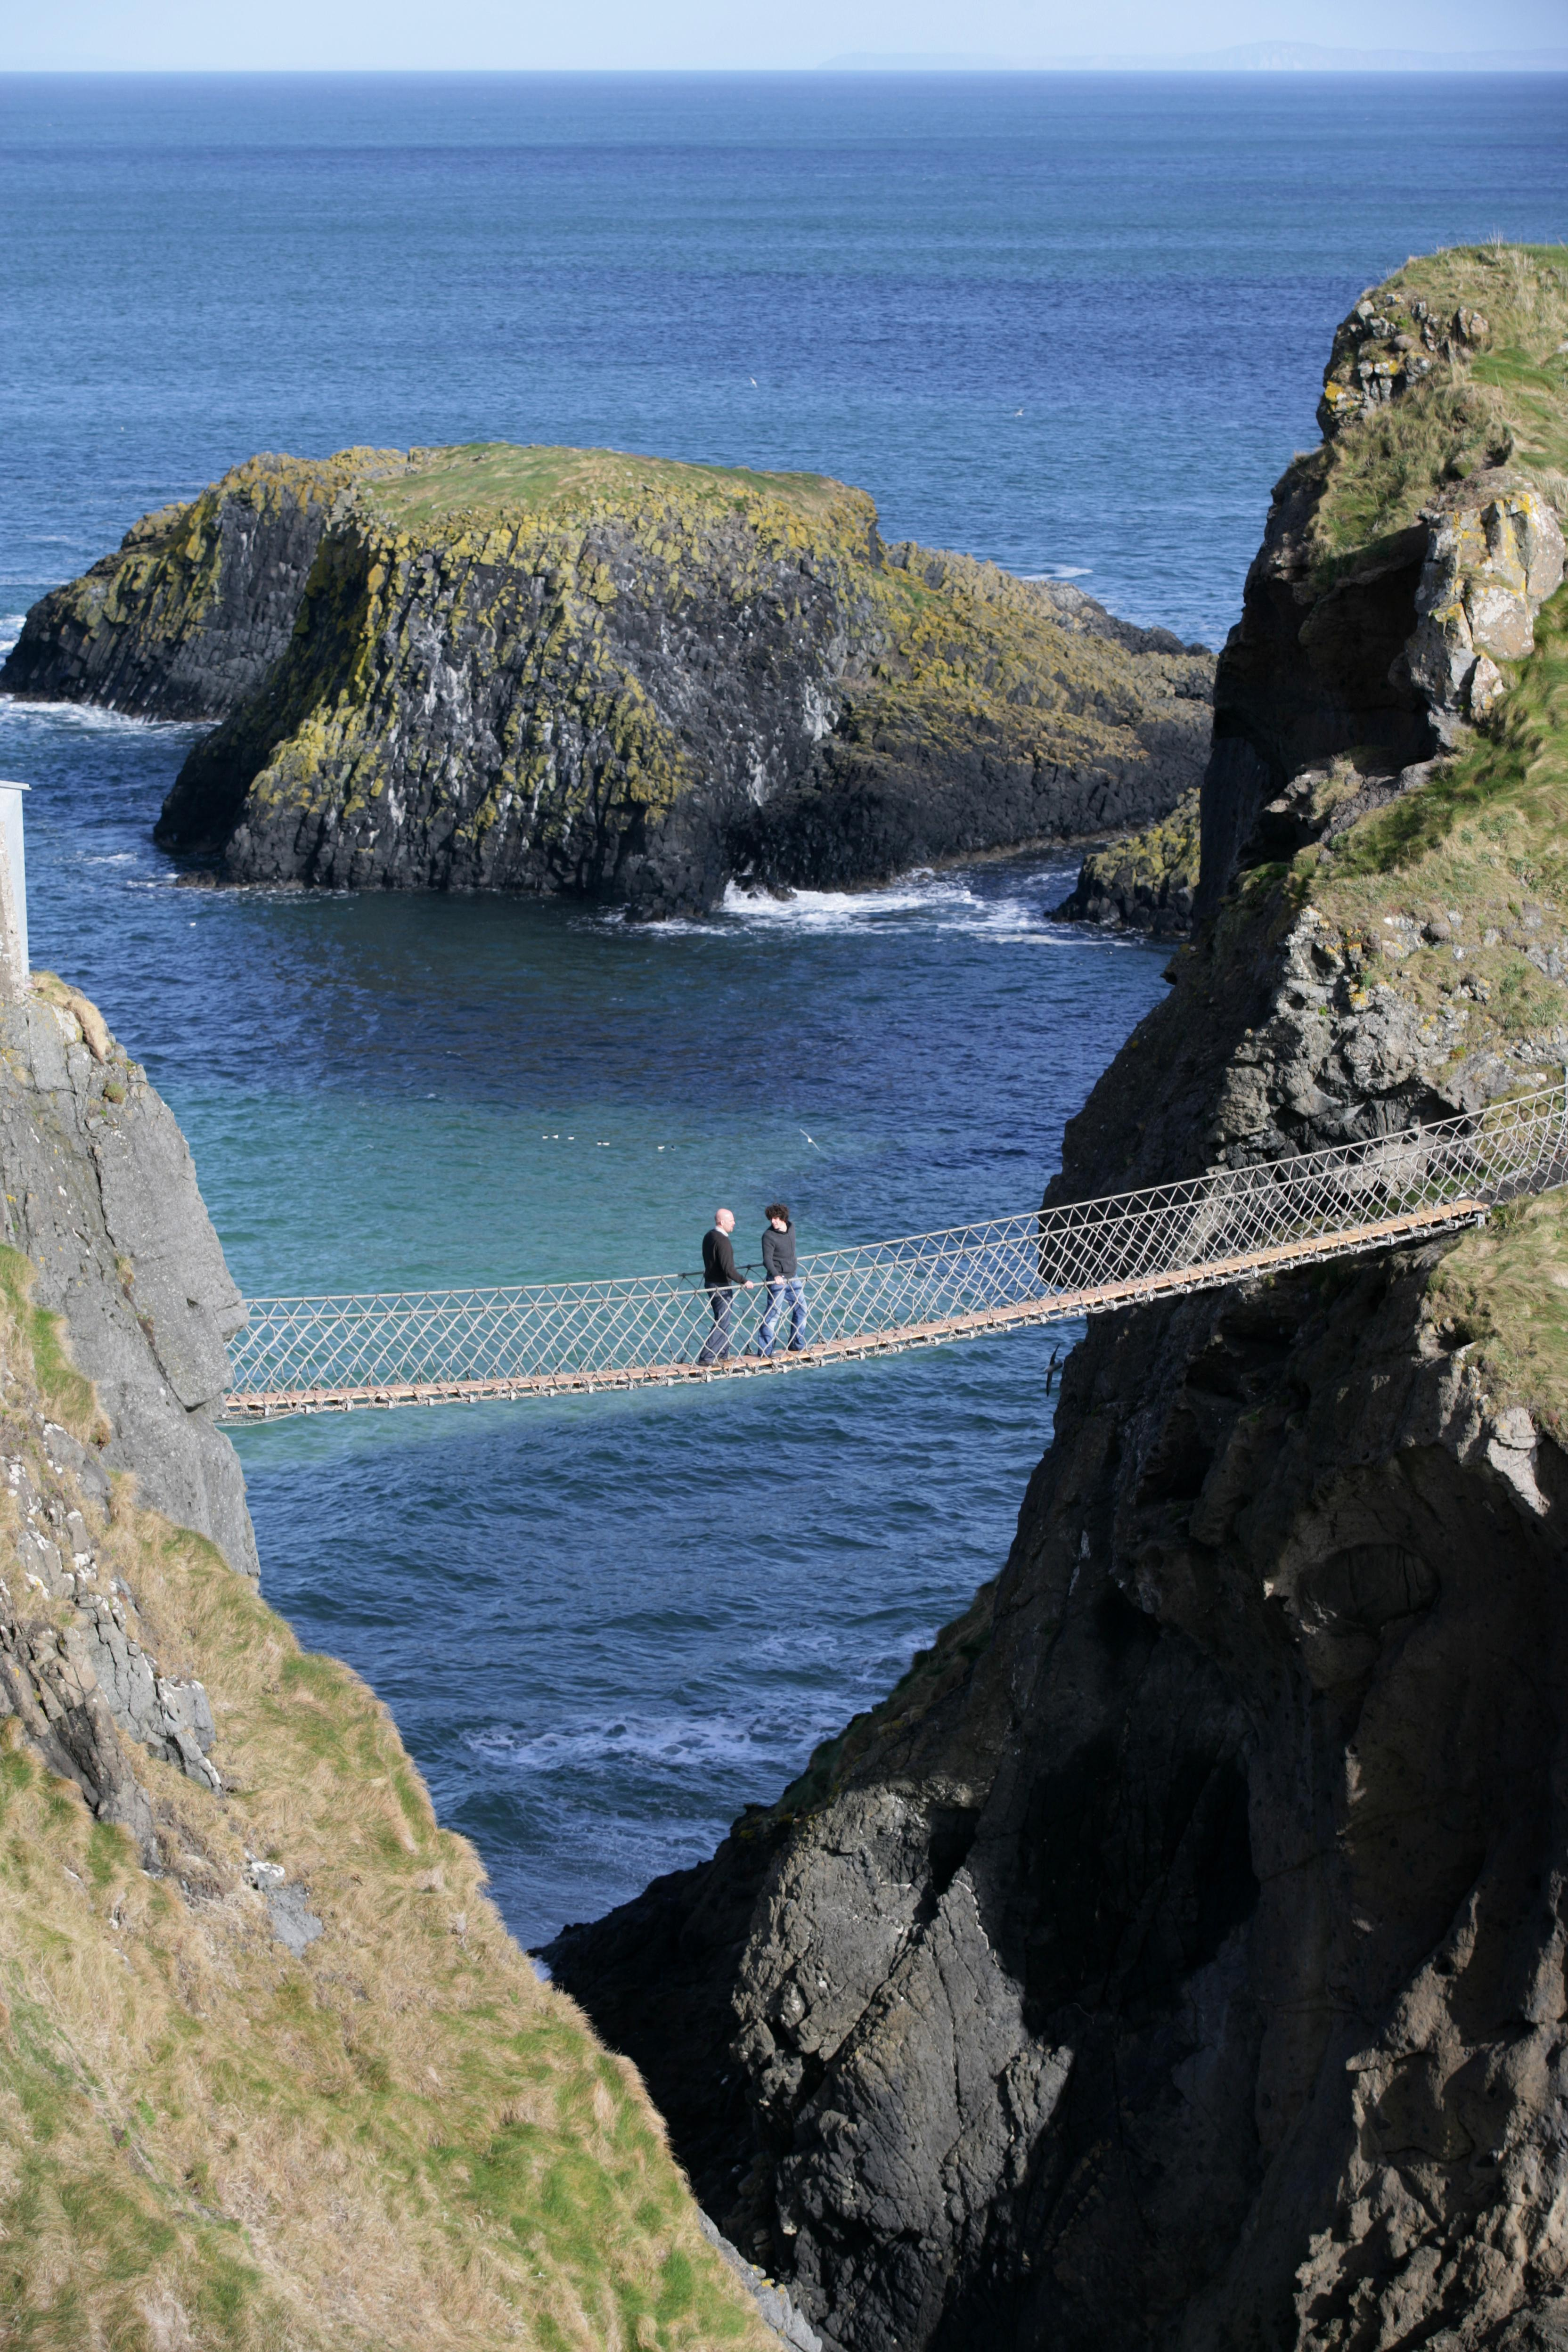 Giant's Causeway and Carrick-a-Rede Rope Brid